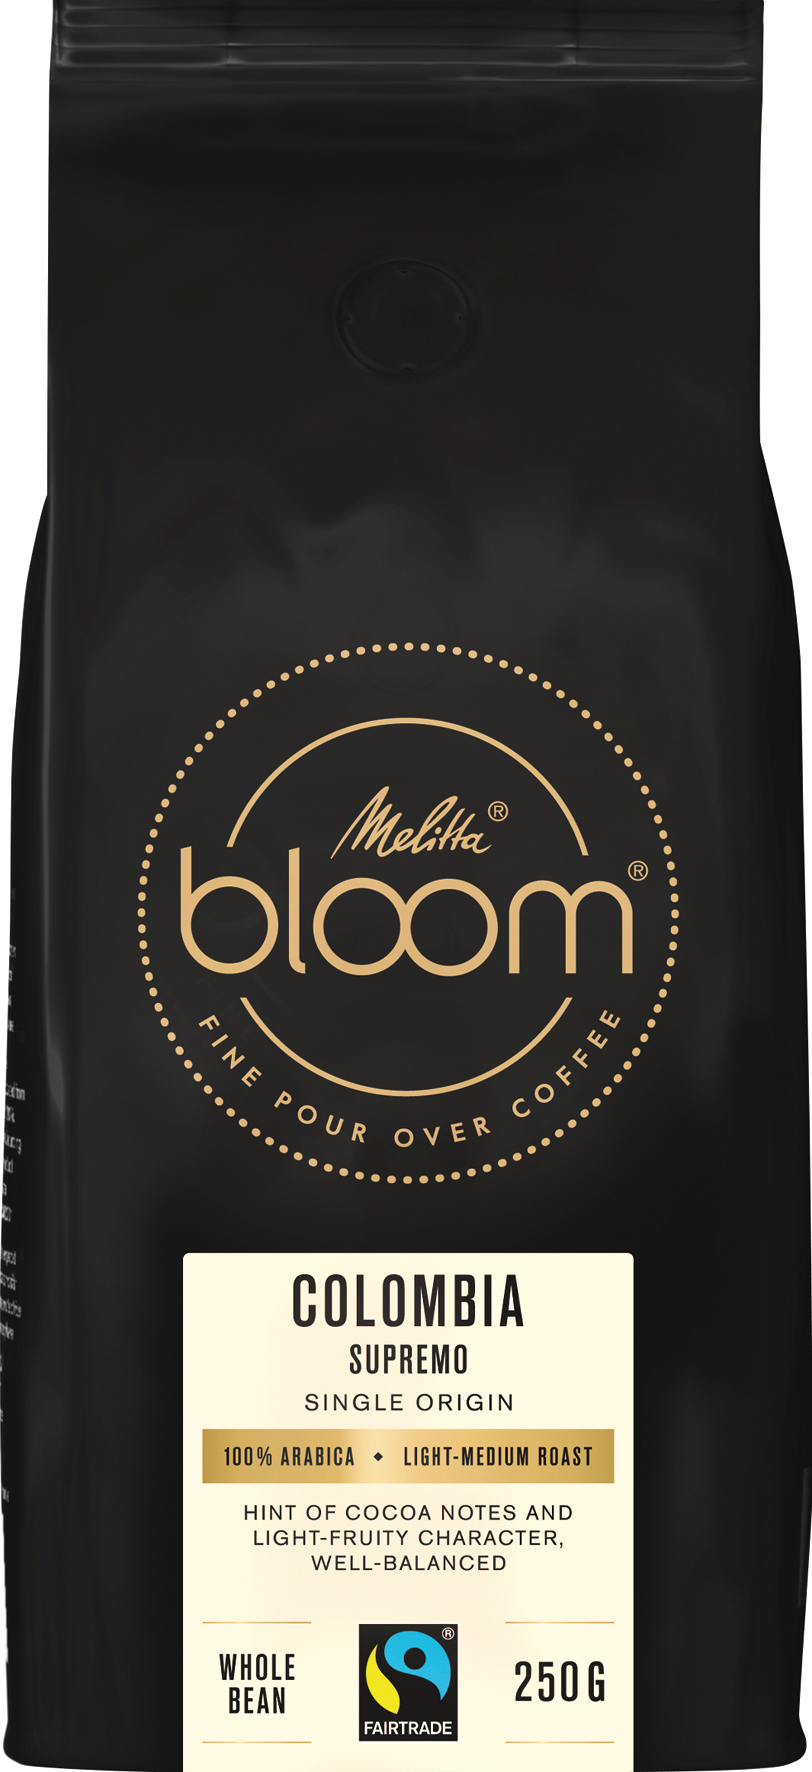 Melitta Bloom Colombia Supremo 250g